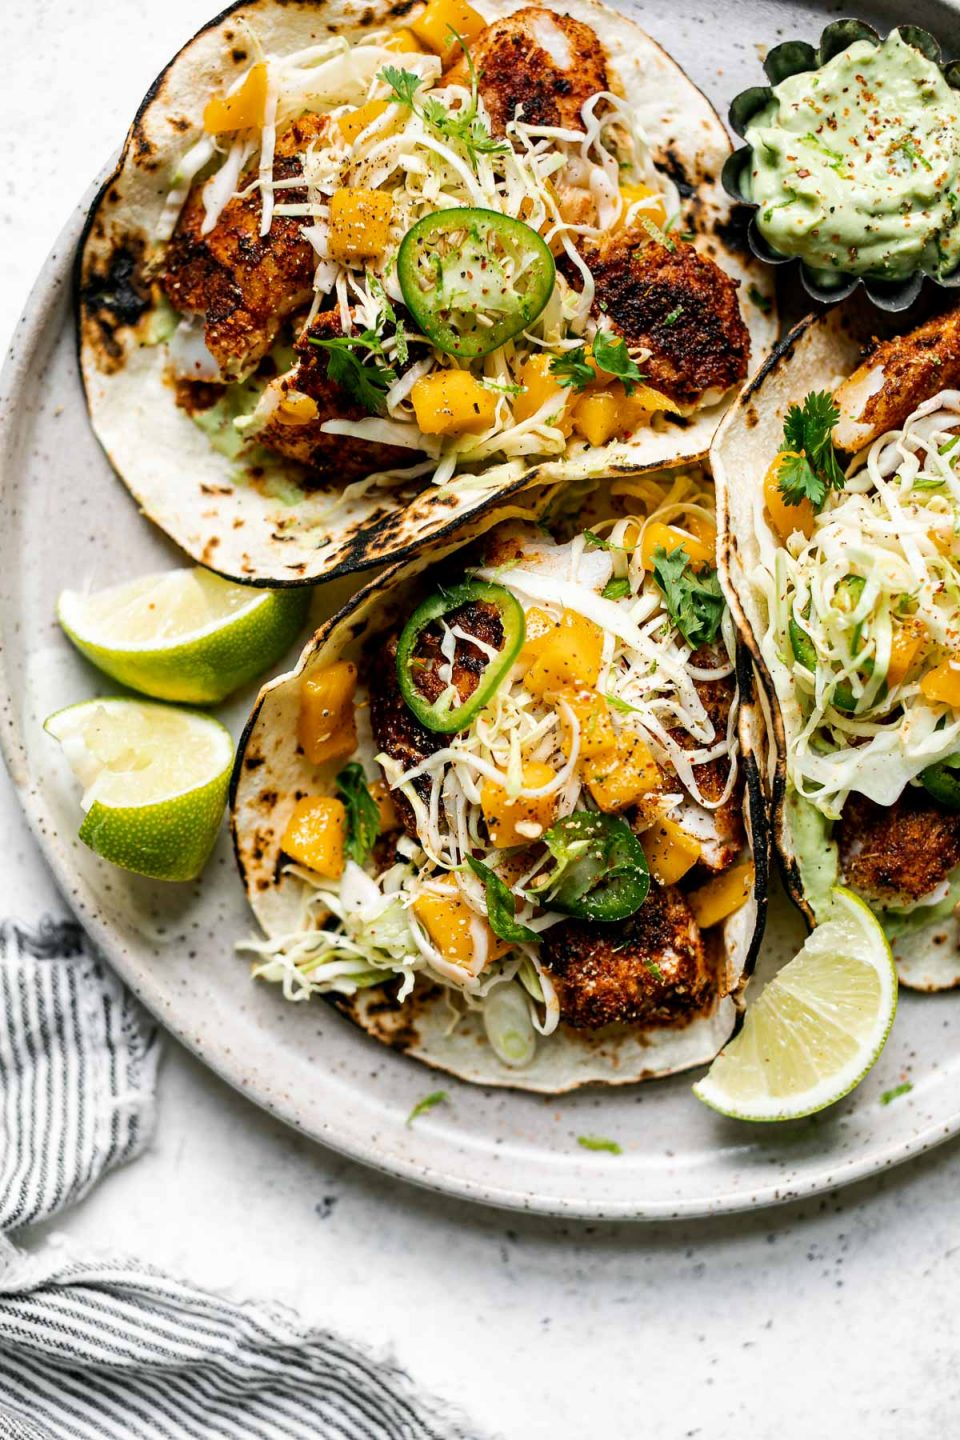 3 assembled grilled cod fish tacos topped with ginger mango slaw. The tacos sit atop a gray speckled ceramic plate with a small dish of avocado crema & lime wedges. The plate sits on a white surface, next to a gray and white striped linen napkin.